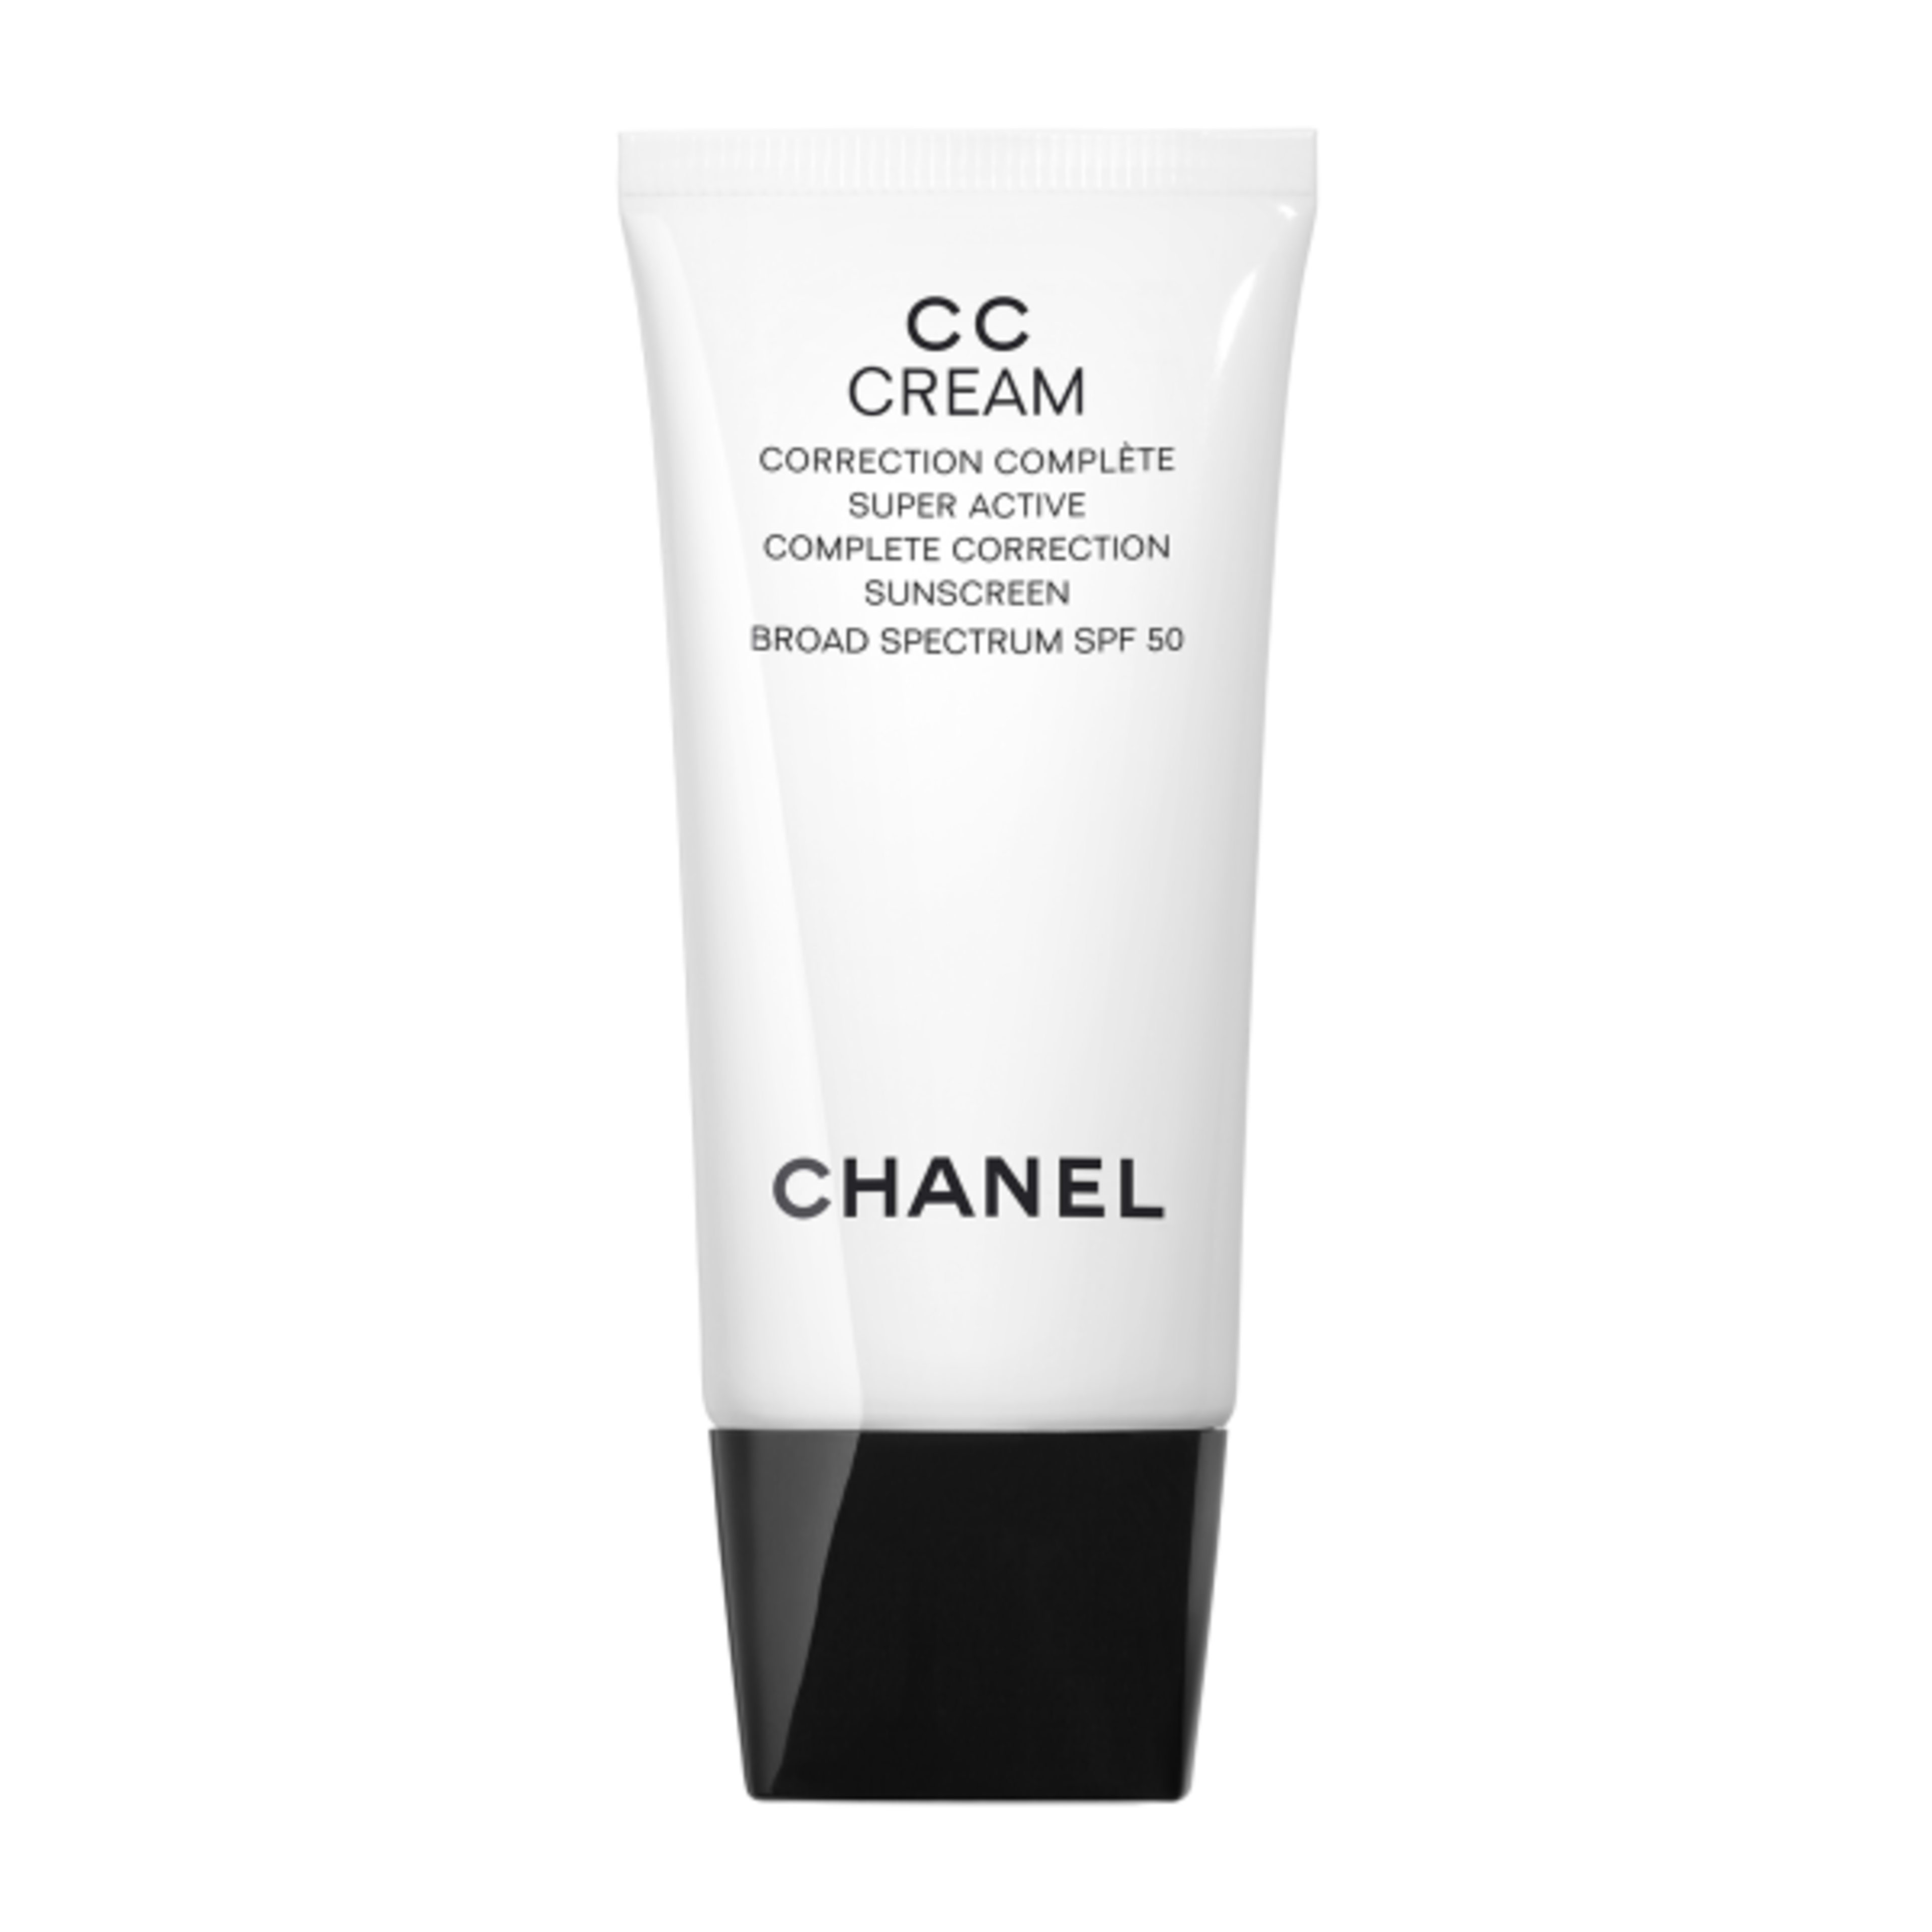 00fc6b1432908 CC CREAM. Super Active Complete Correction Sunscreen Broad Spectrum ...